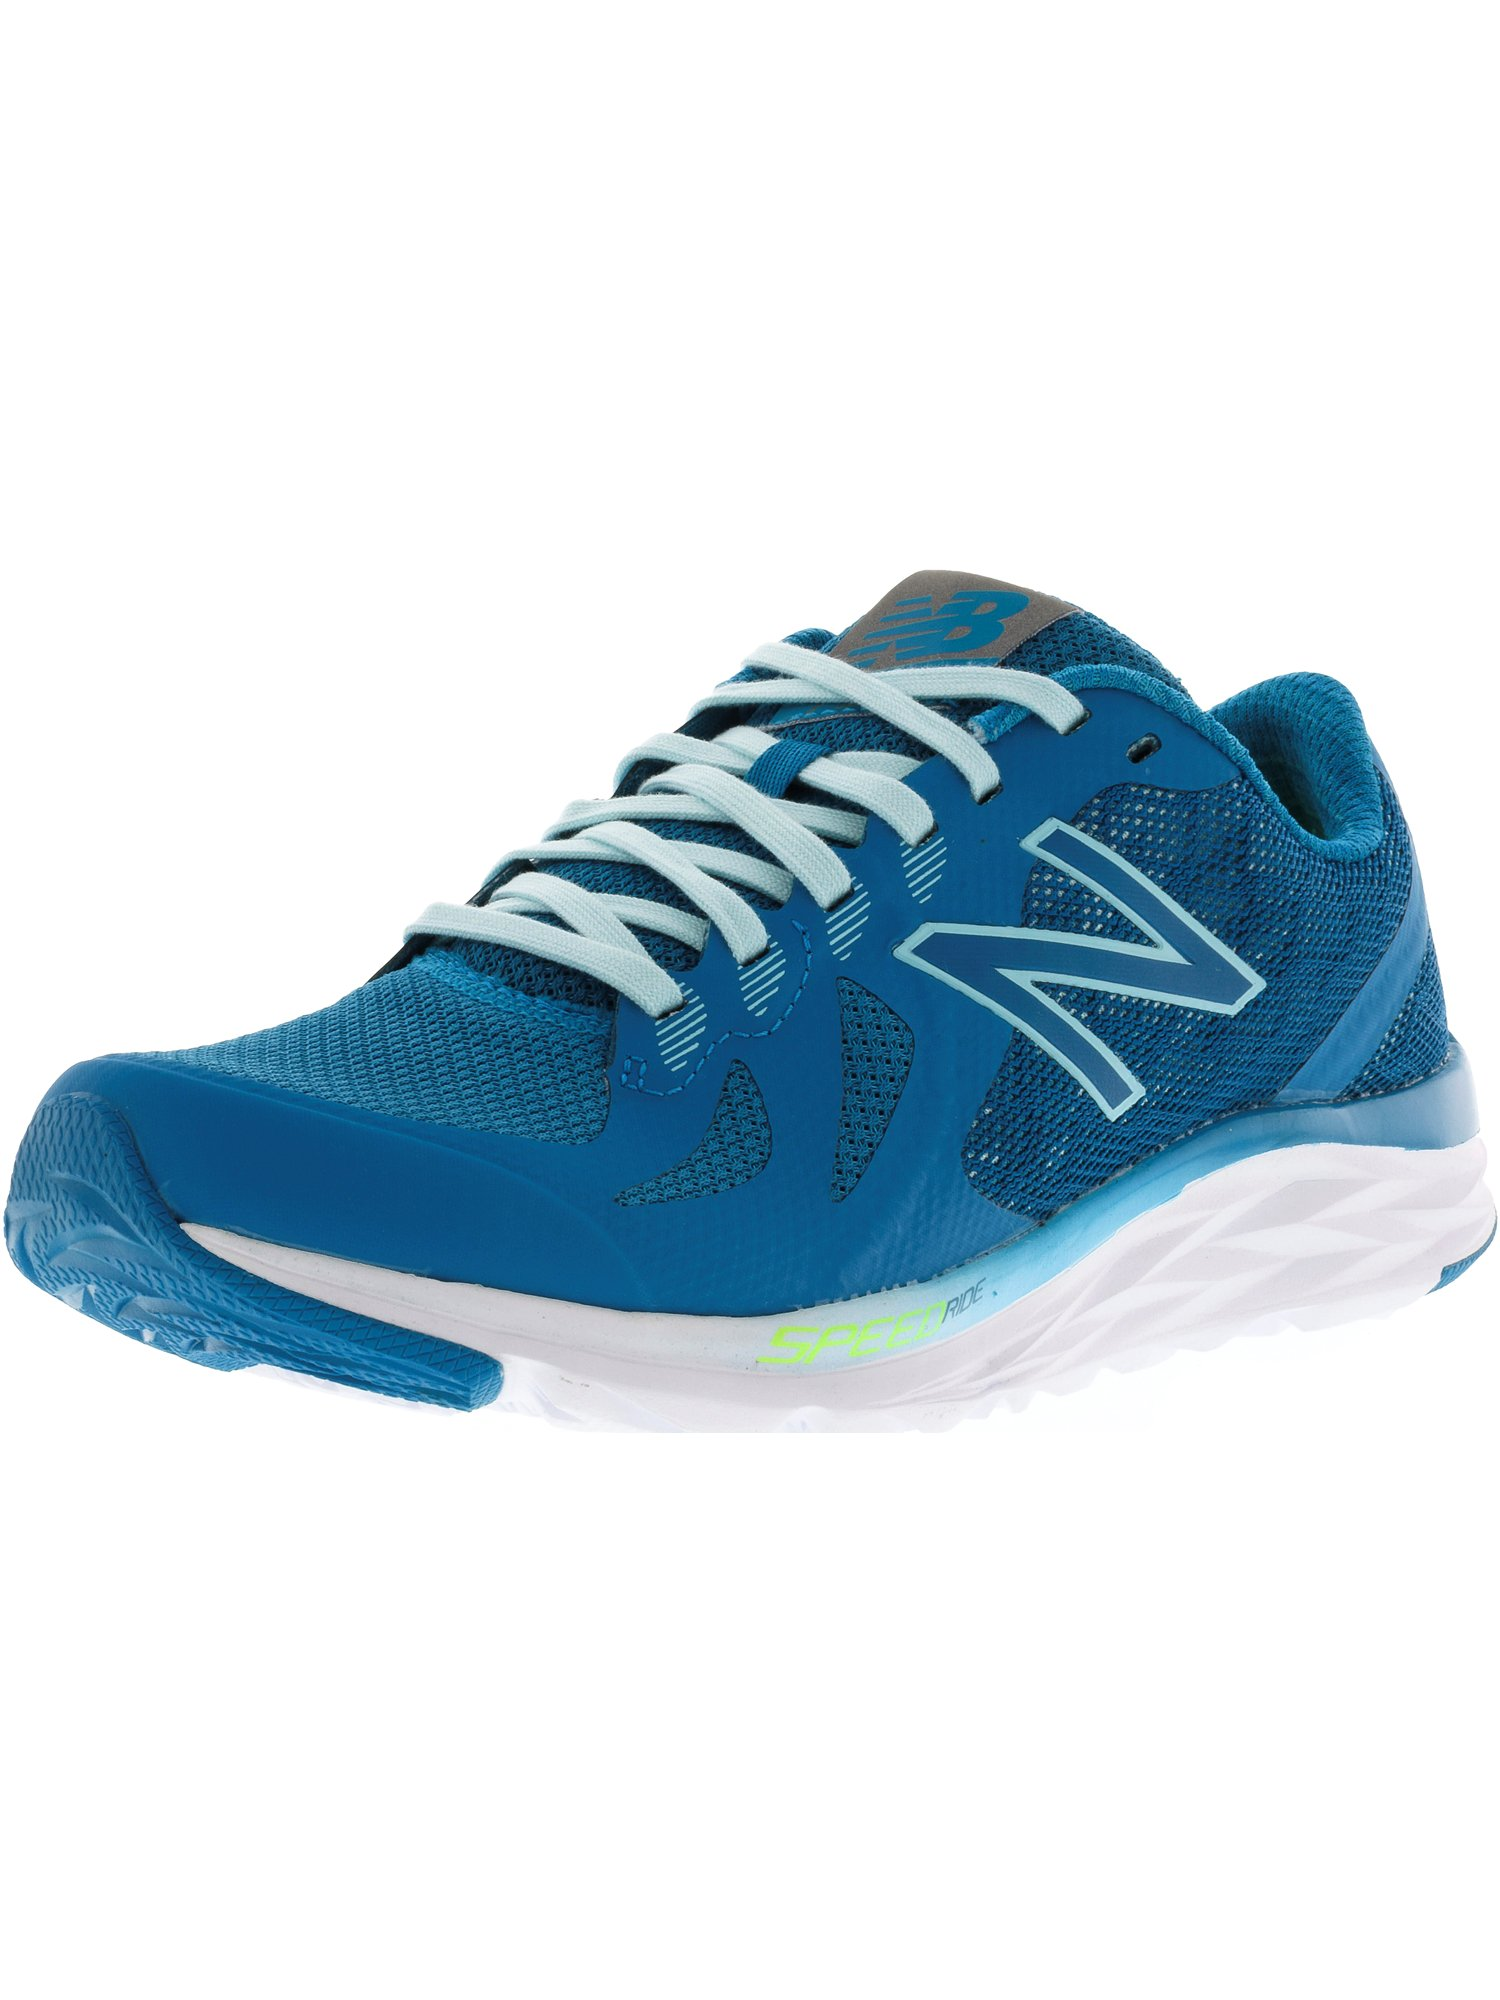 New Balance Women's W790 Ro6 Ankle-High Running Shoe - 6W